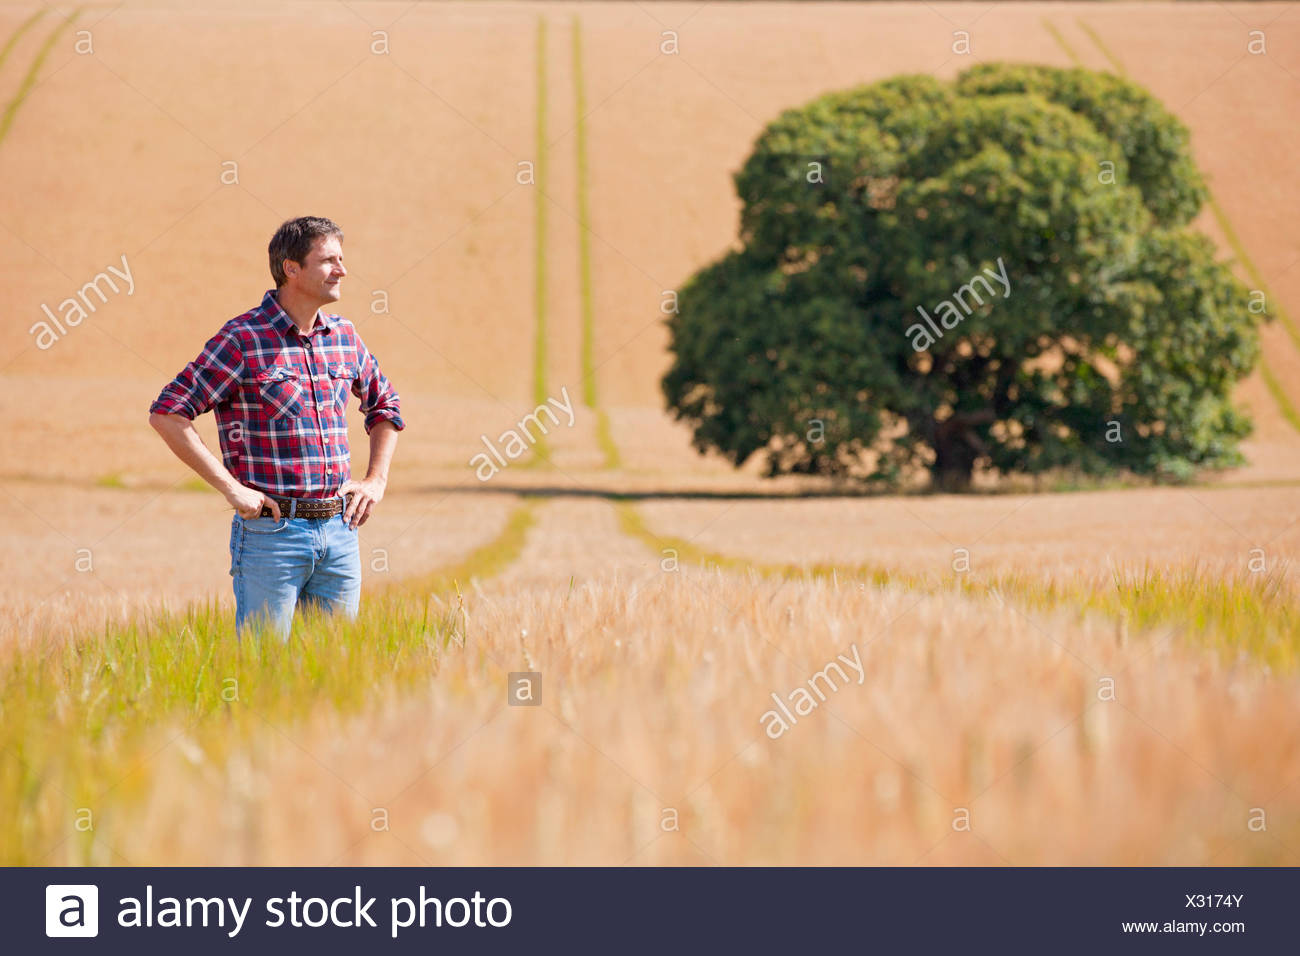 Farmer standing with hands on hips in sunny rural barley crop field - Stock Image